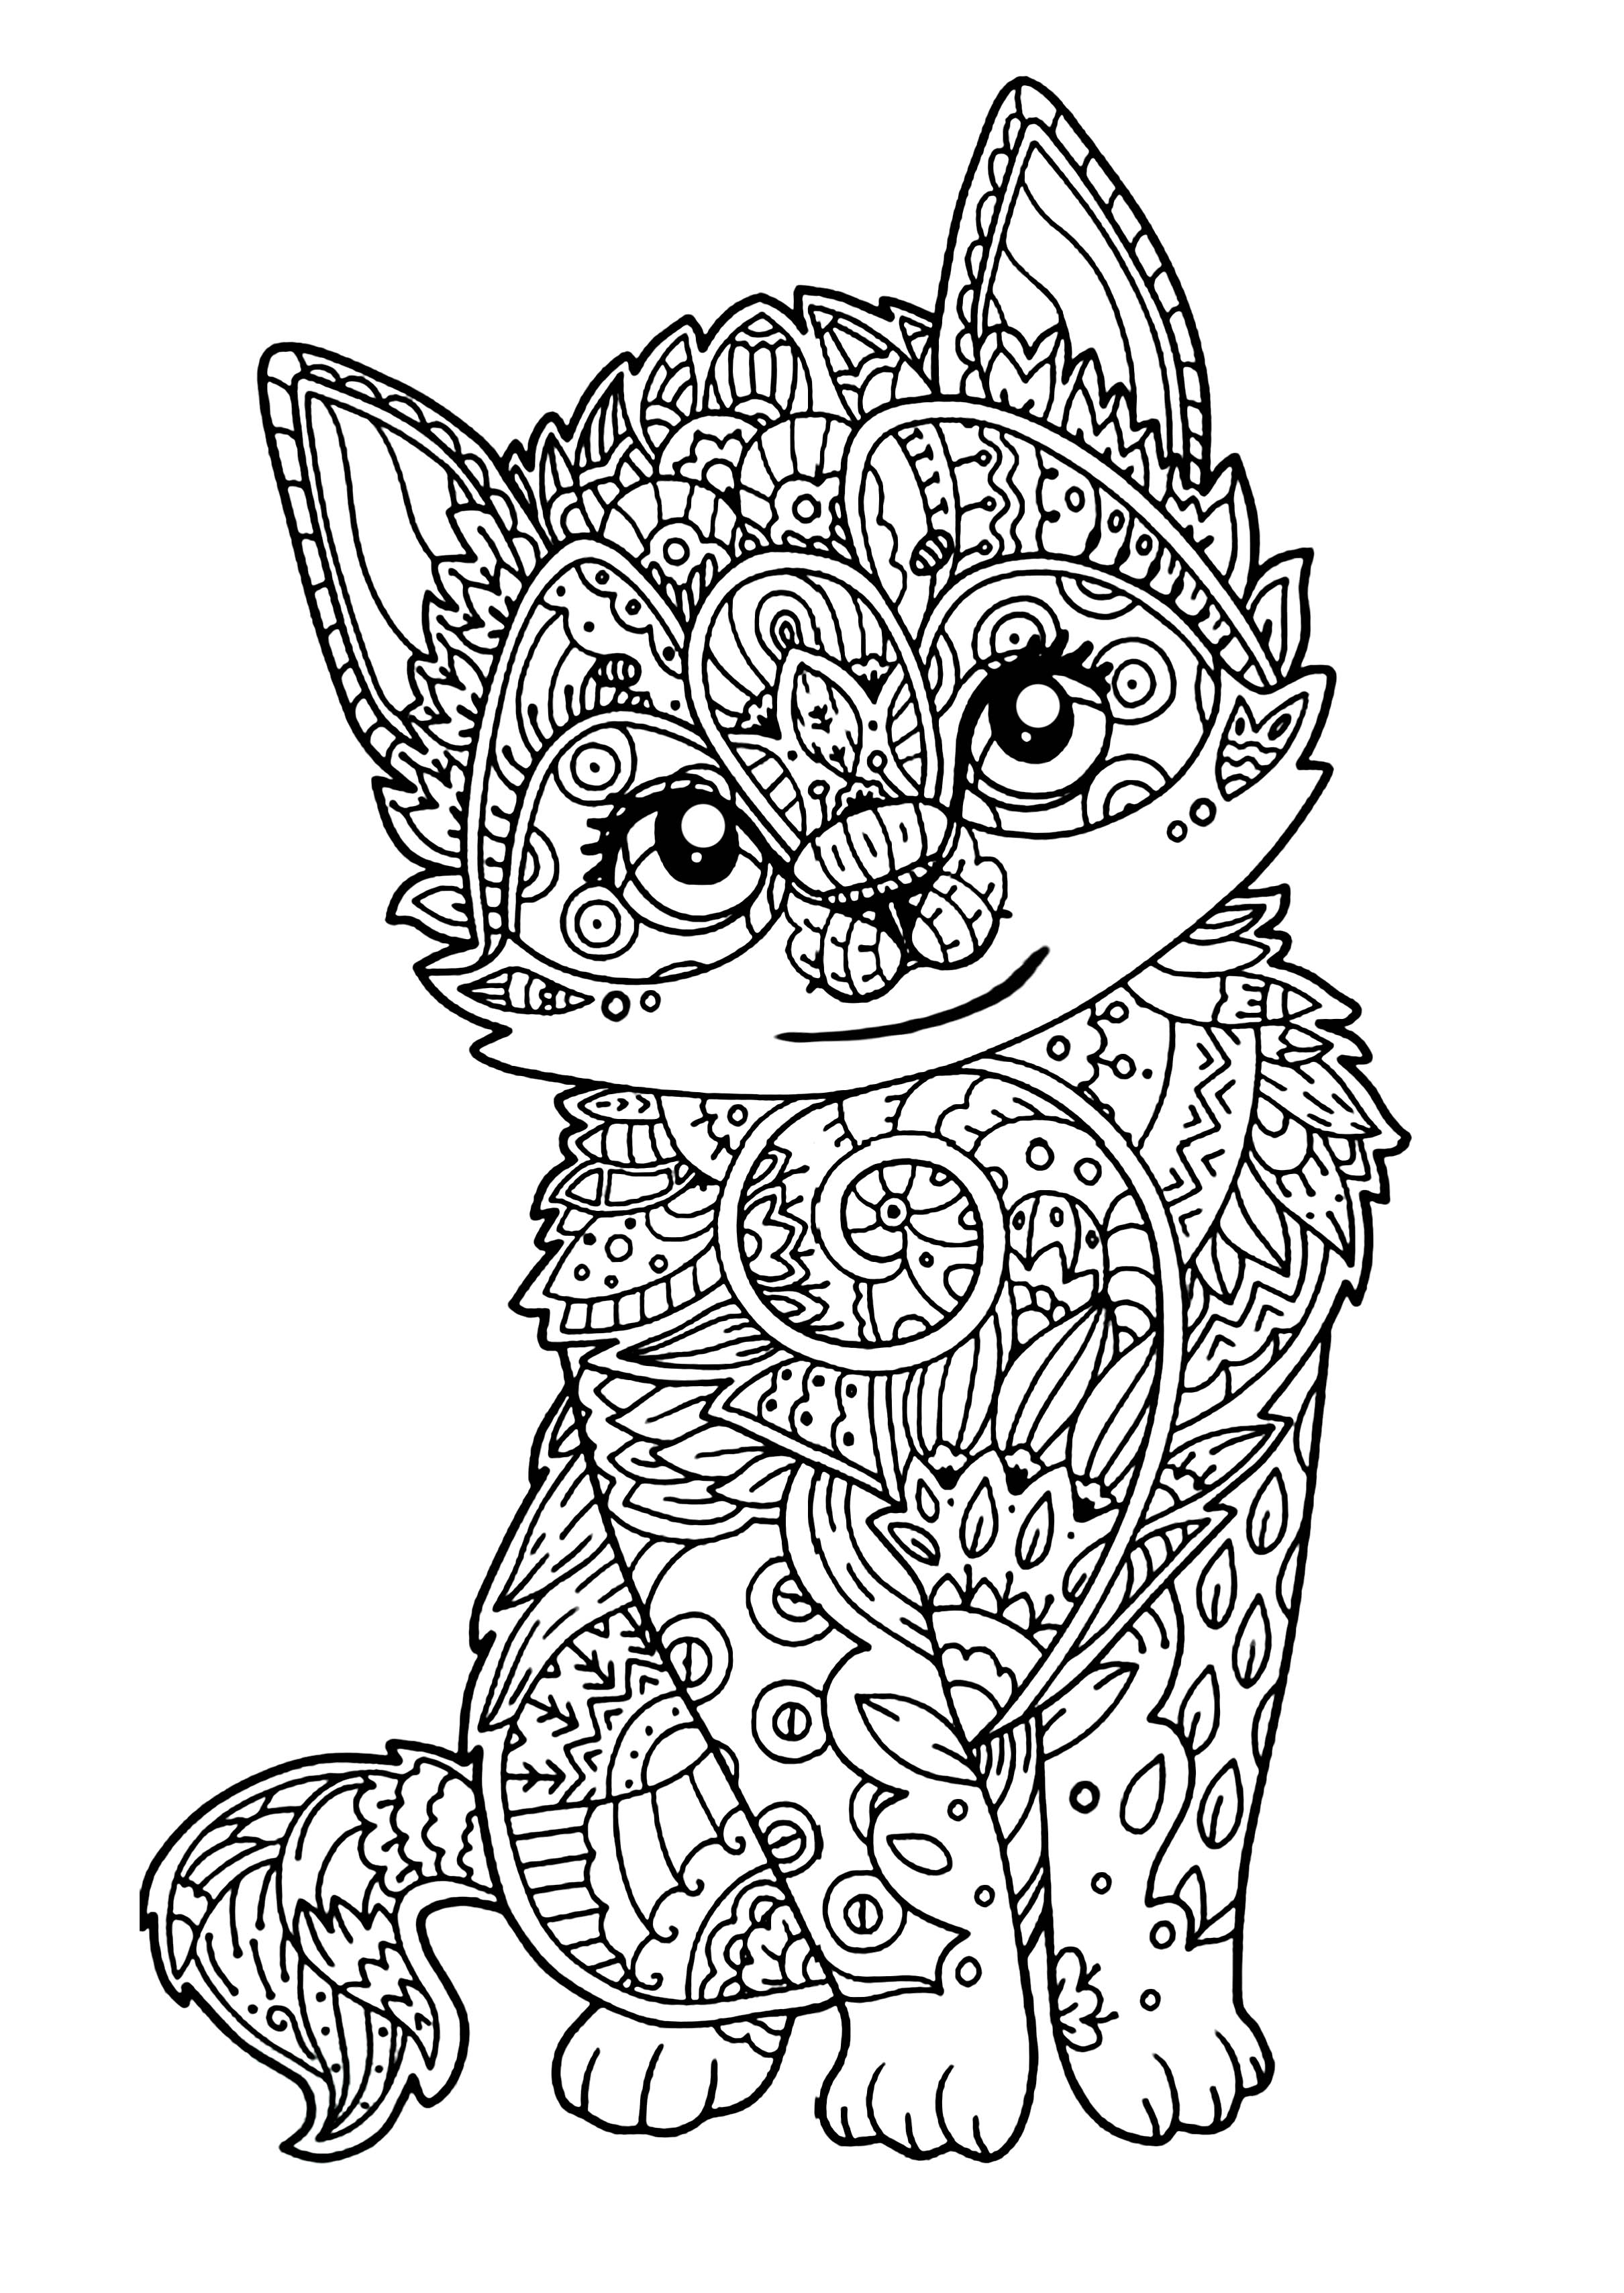 cat adult coloring pages Cute kitten   Cats Adult Coloring Pages cat adult coloring pages